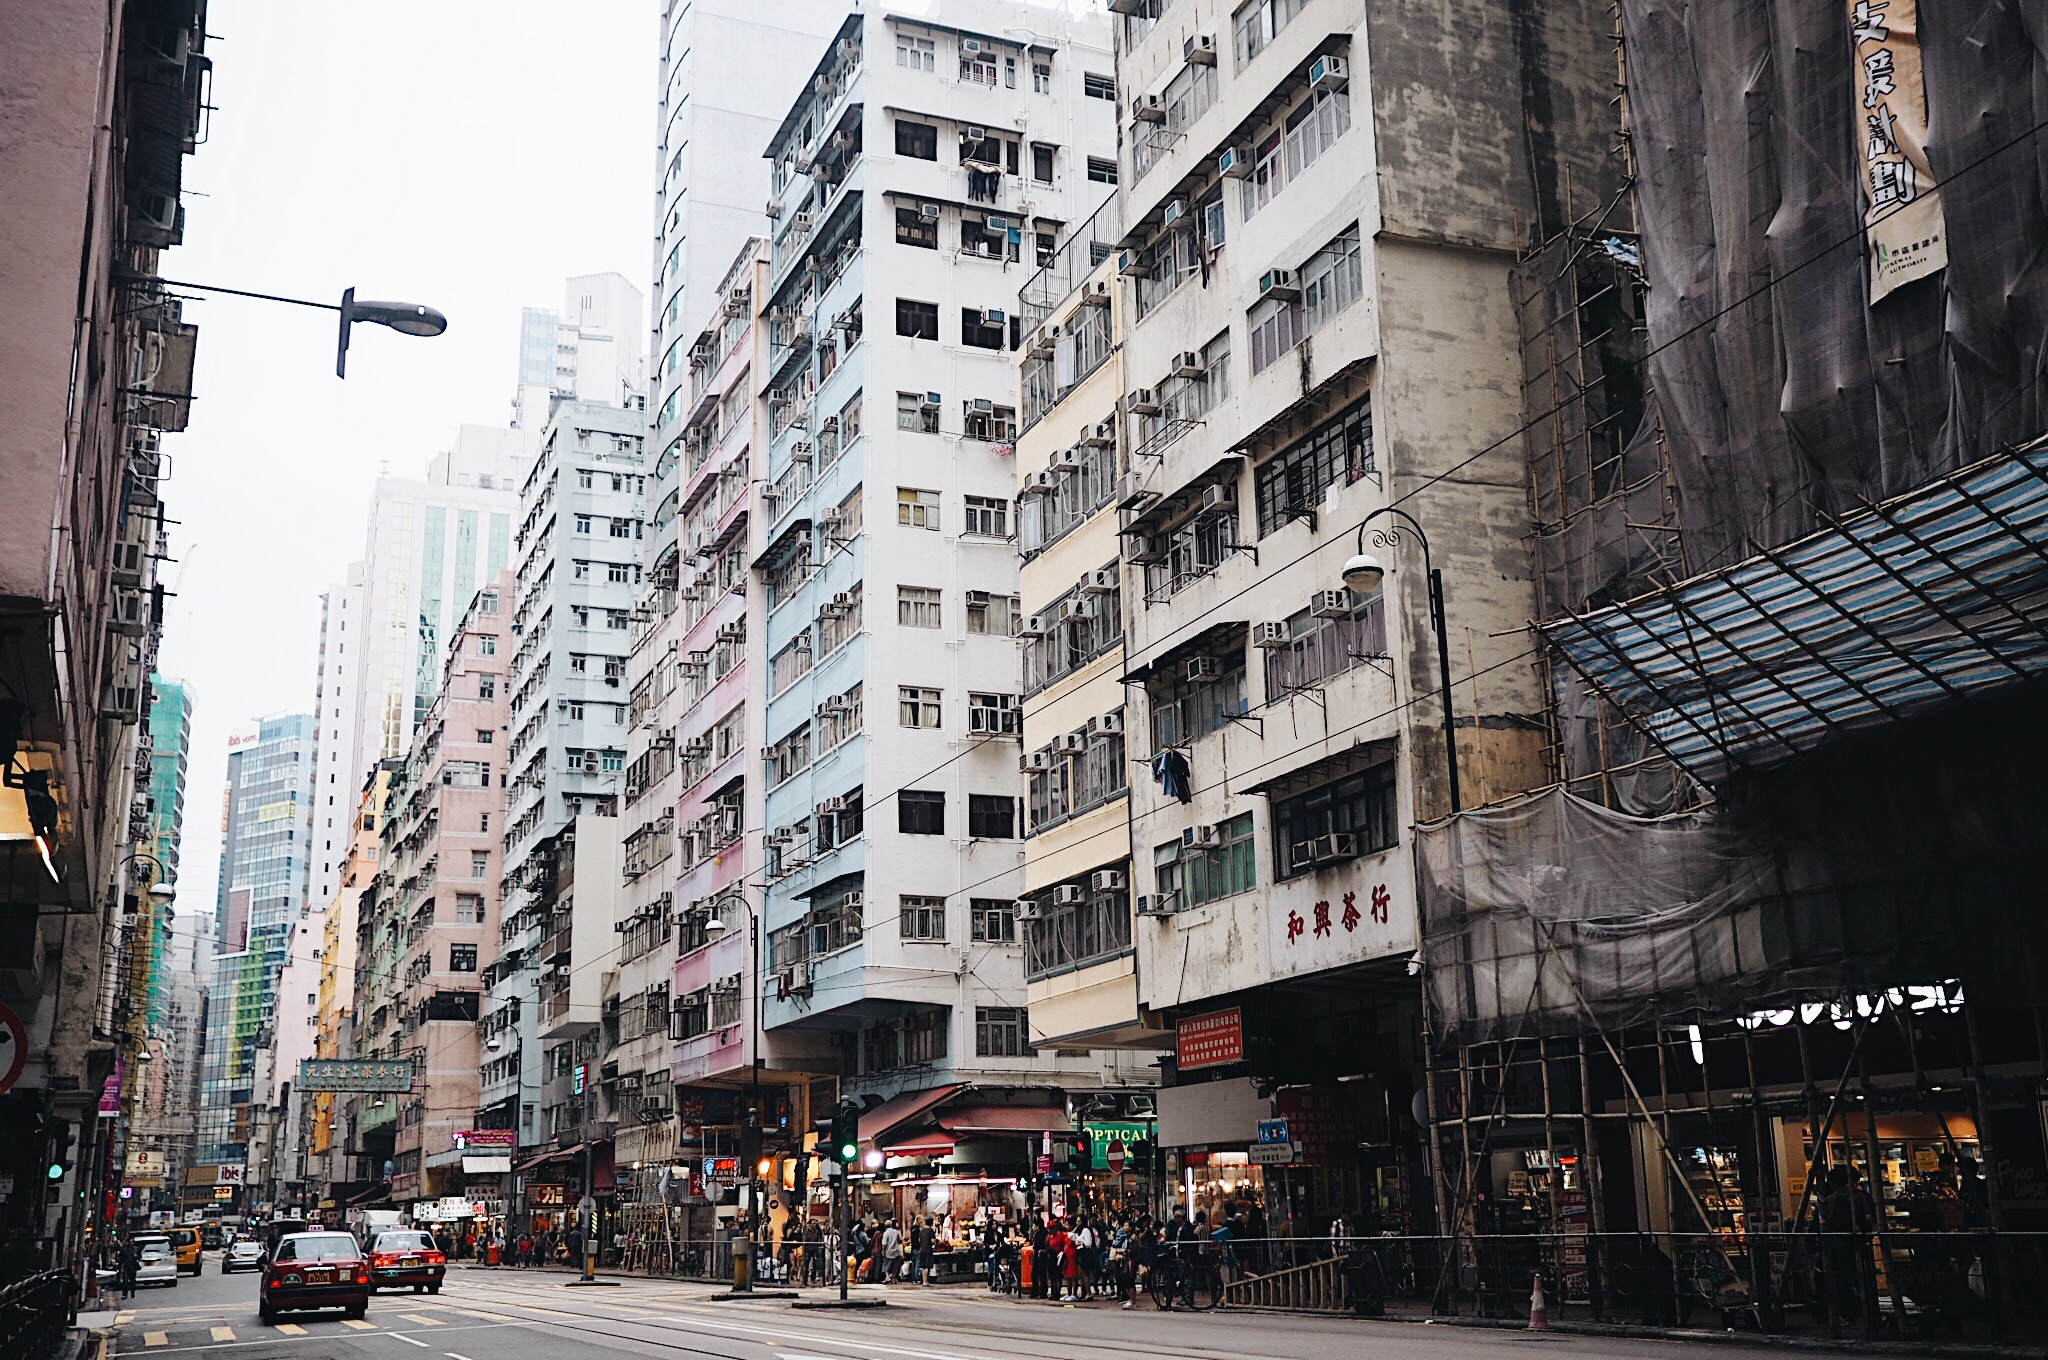 SUNDAYS IN Hong Kong -